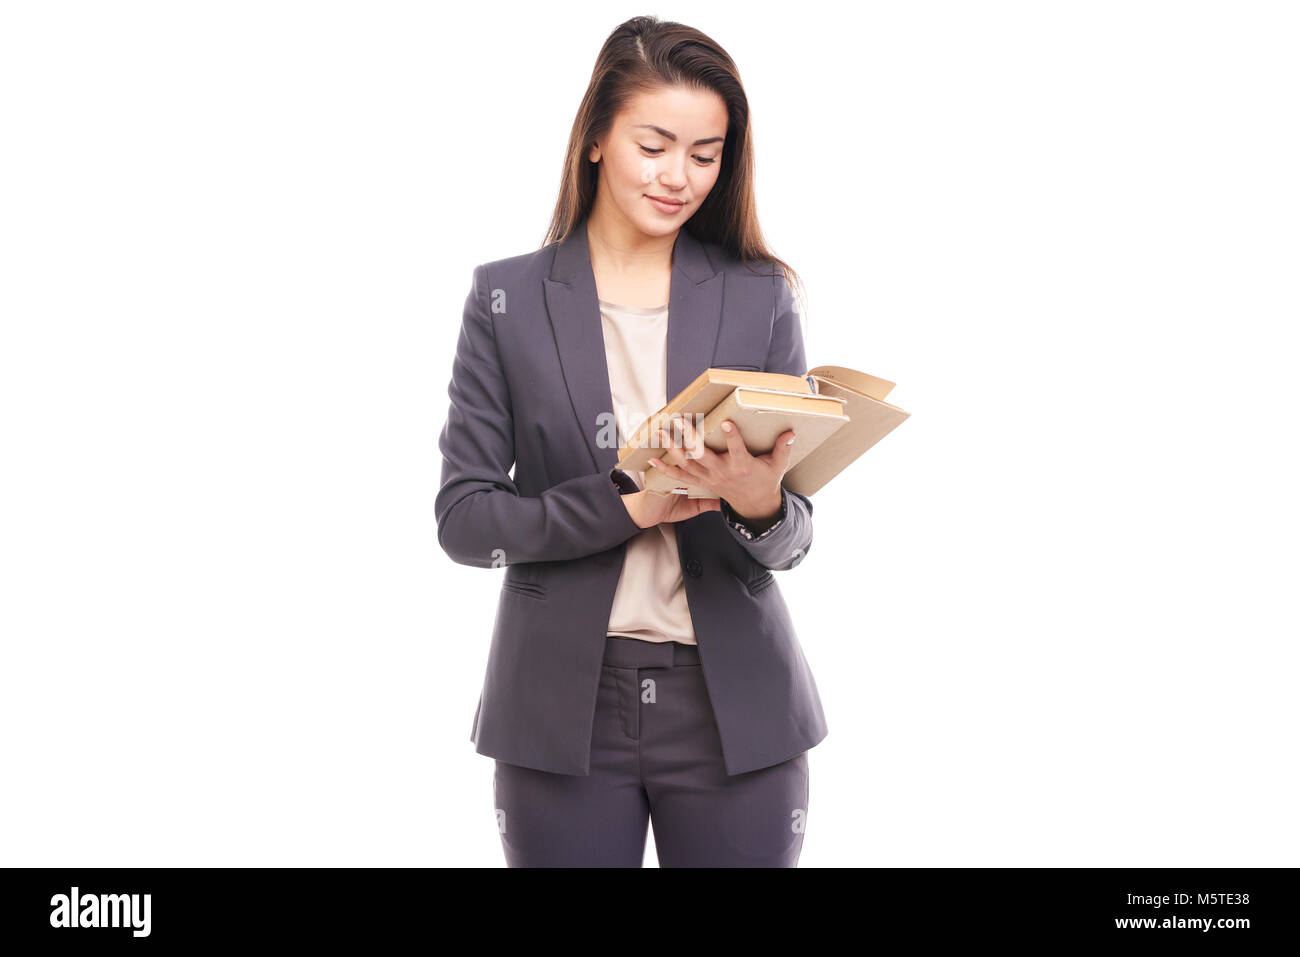 Businesswoman with book - Stock Image